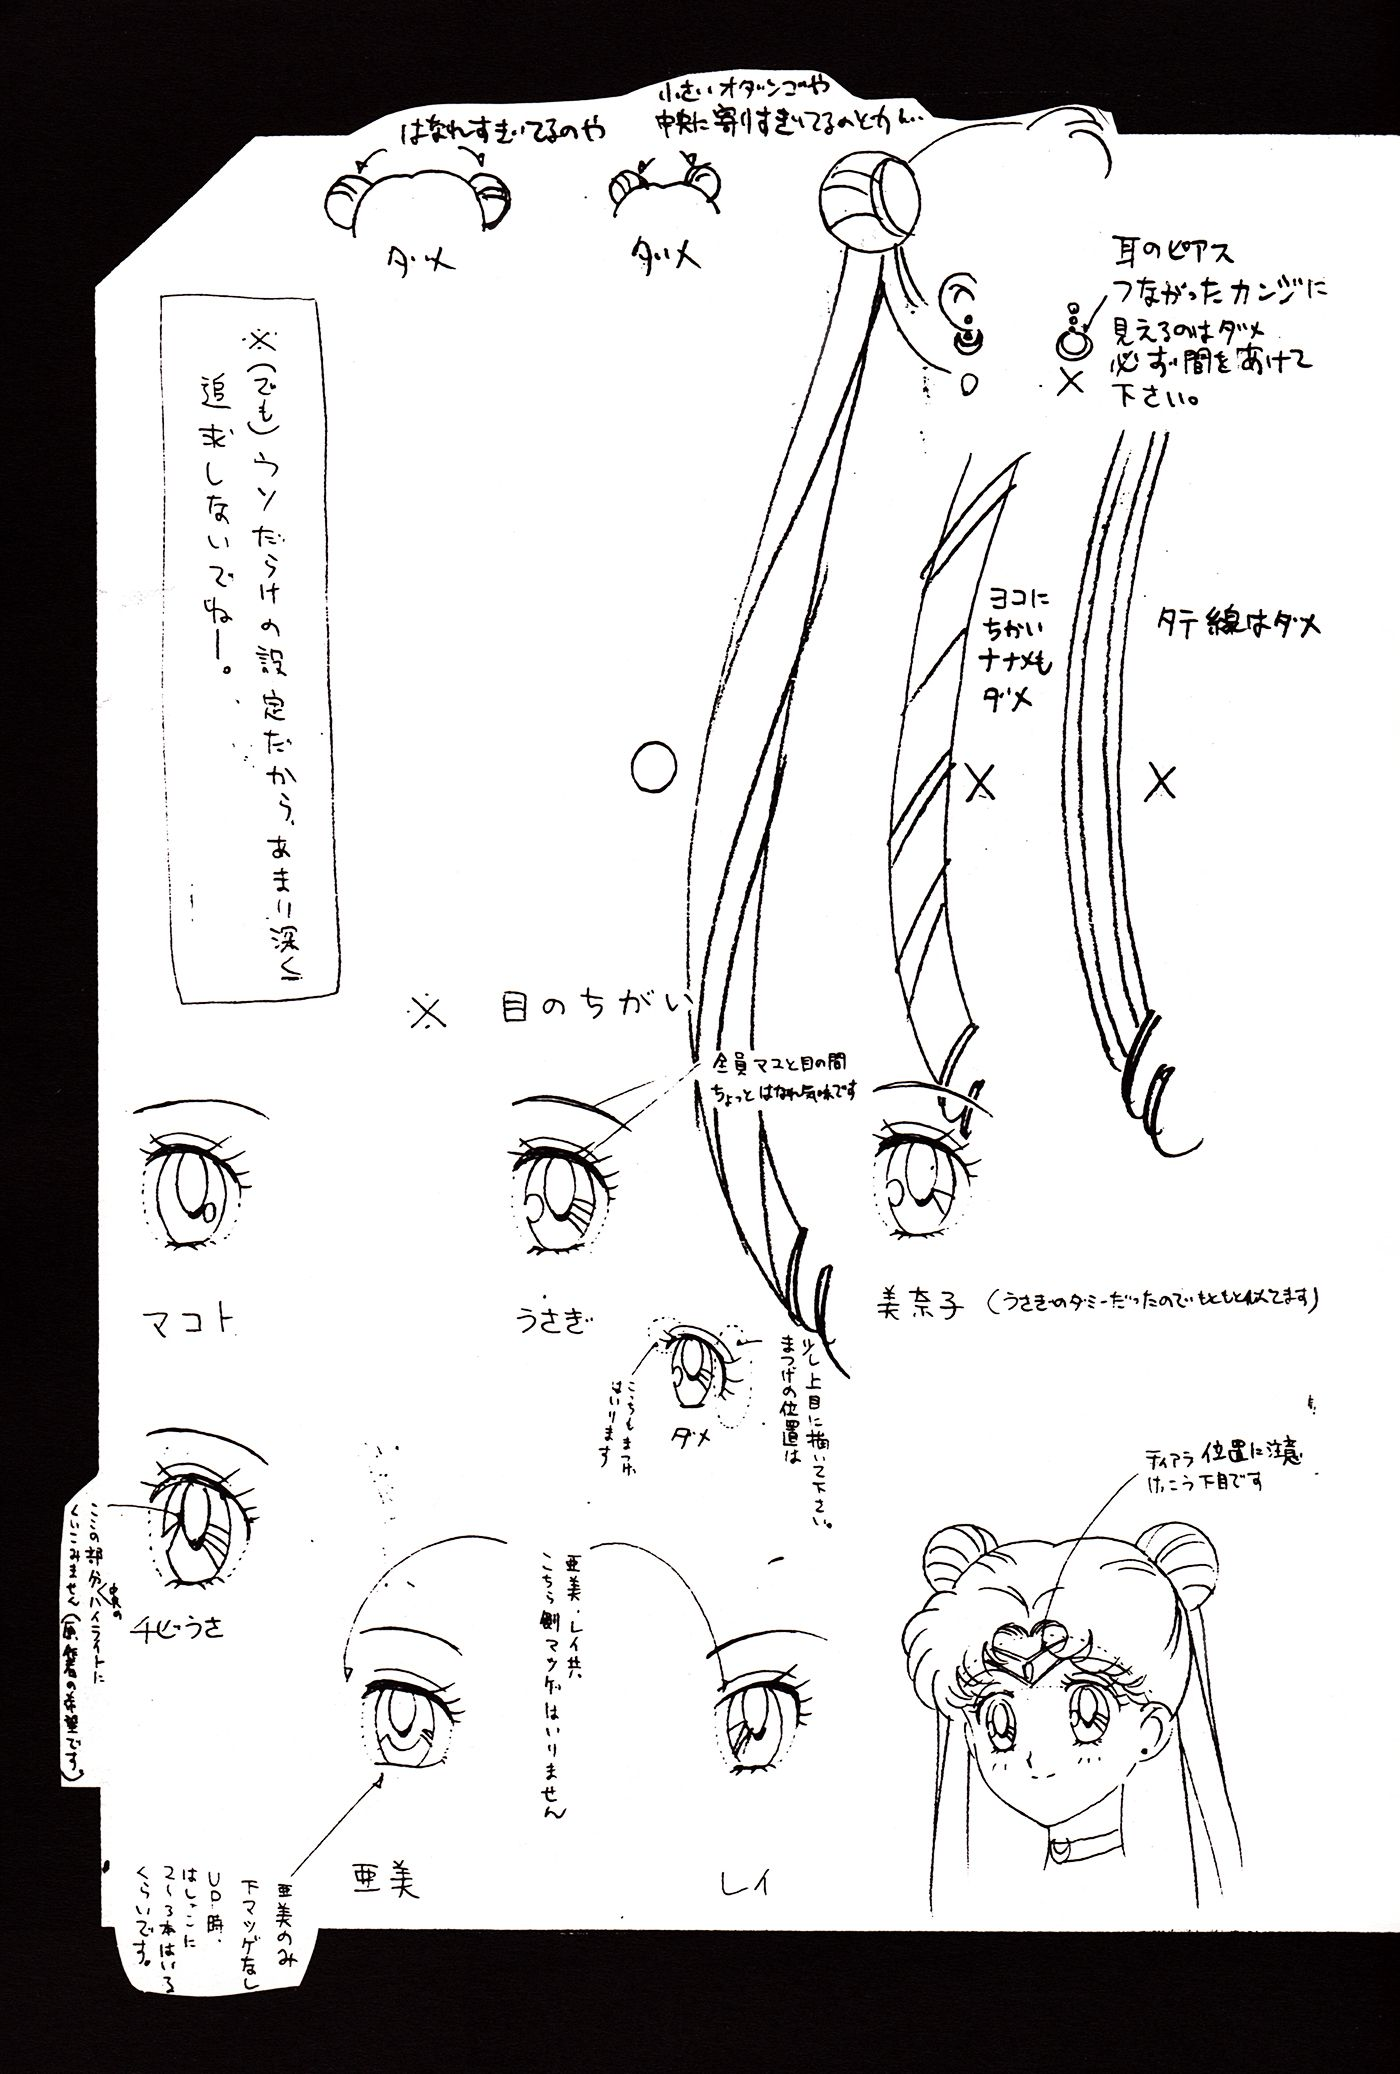 Character Reference Sheet Settei For Sailor Moon Usagi Tsukino From Sailor Moon Series By